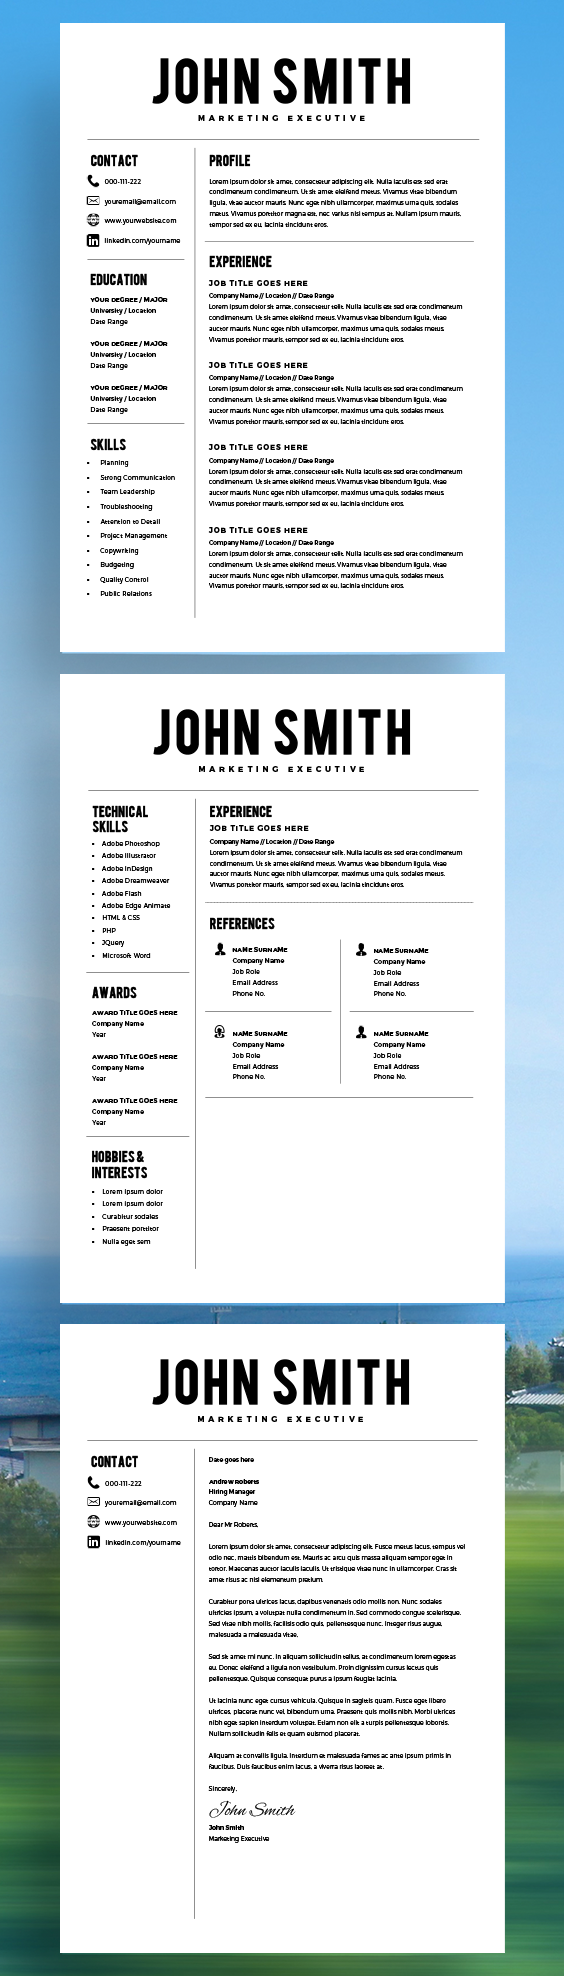 ms word resume builder